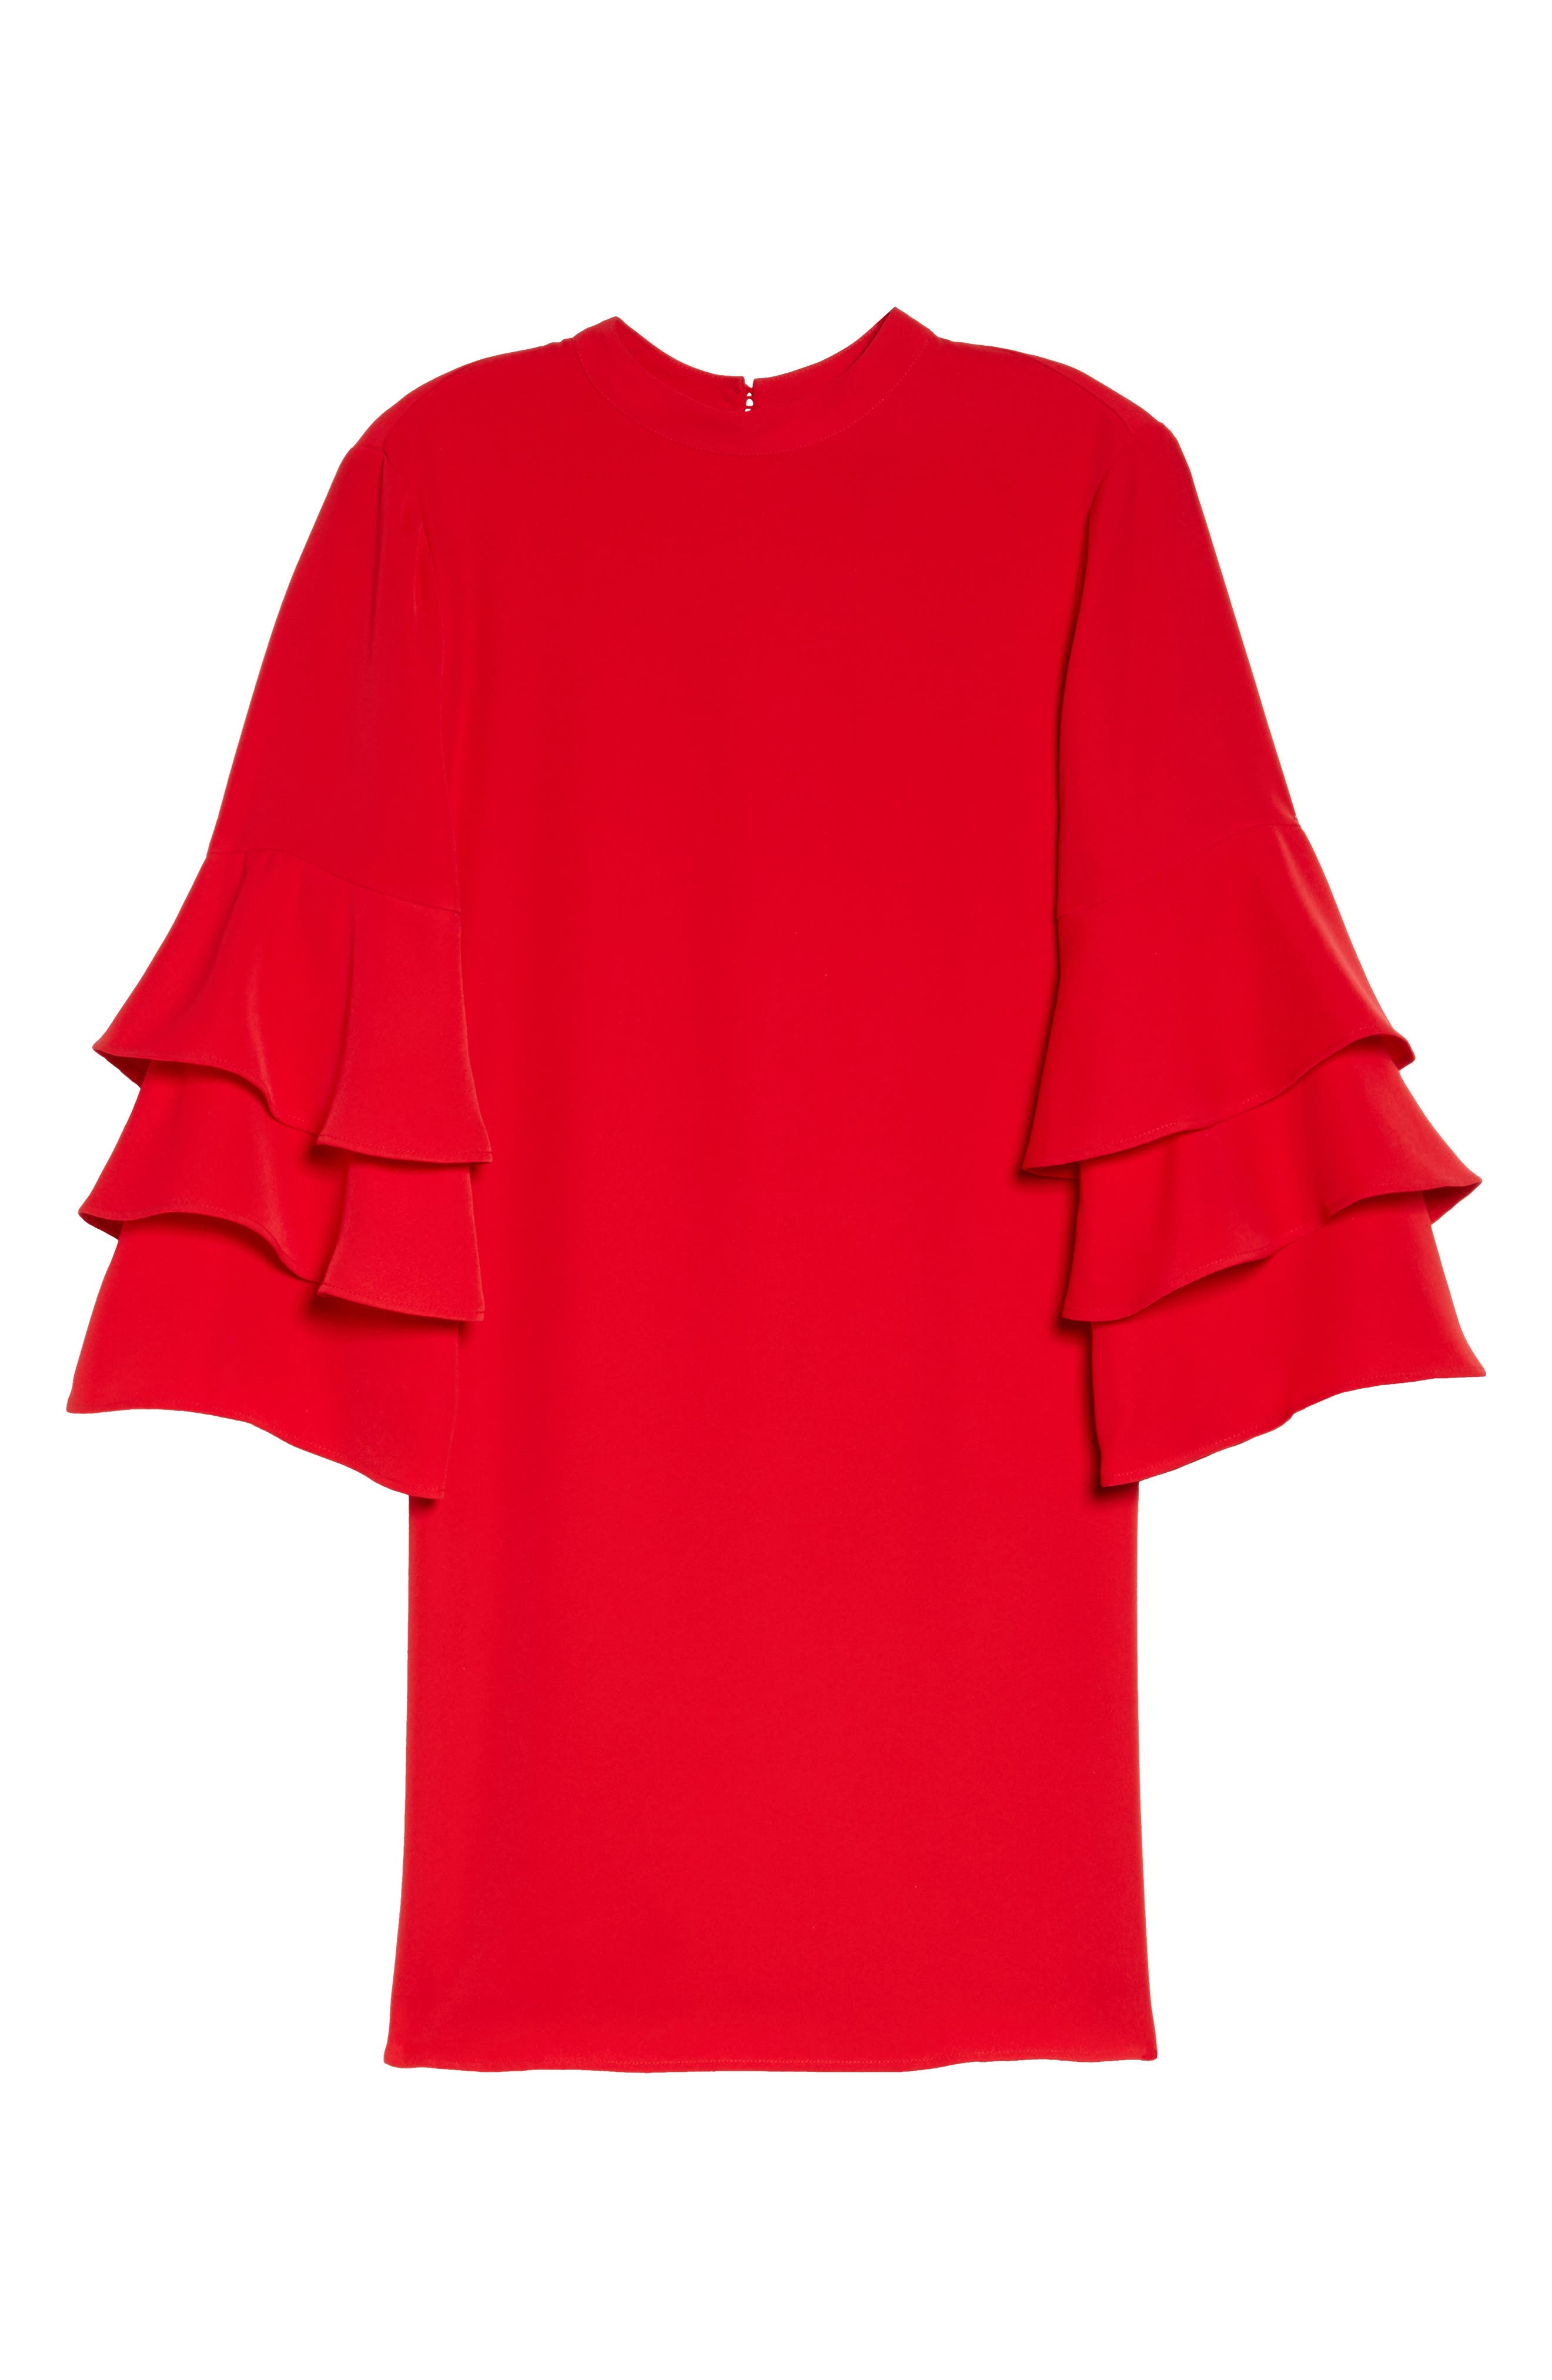 Ruffle Sleeve Shift Dress,                             Alternate thumbnail 6, color,                             Red Mars